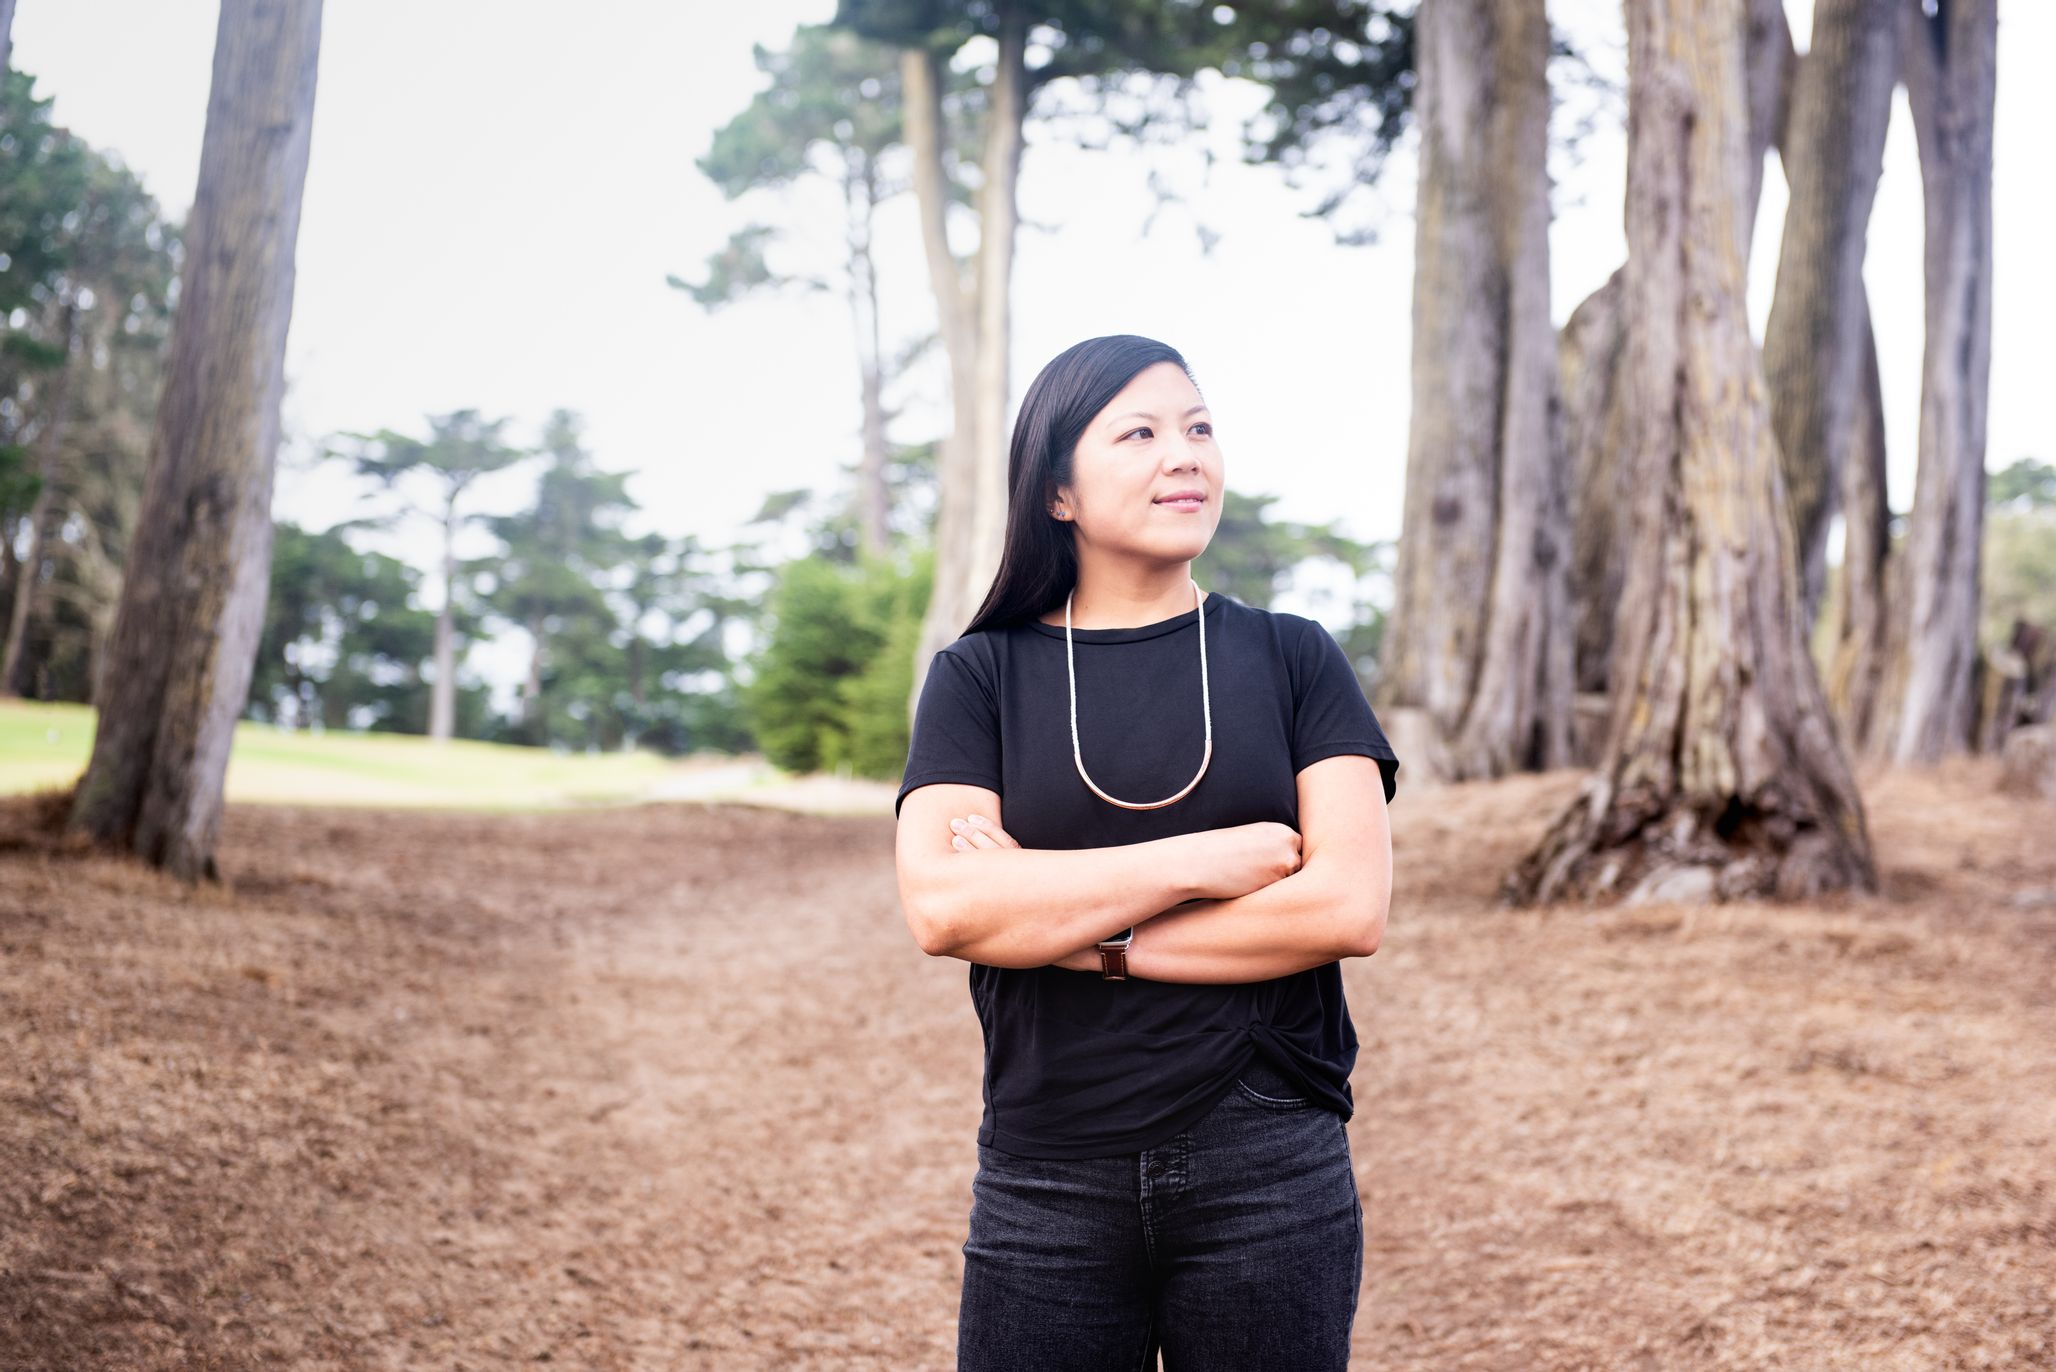 Raylene Yung, former engineering and product leader at Stripe and Facebook